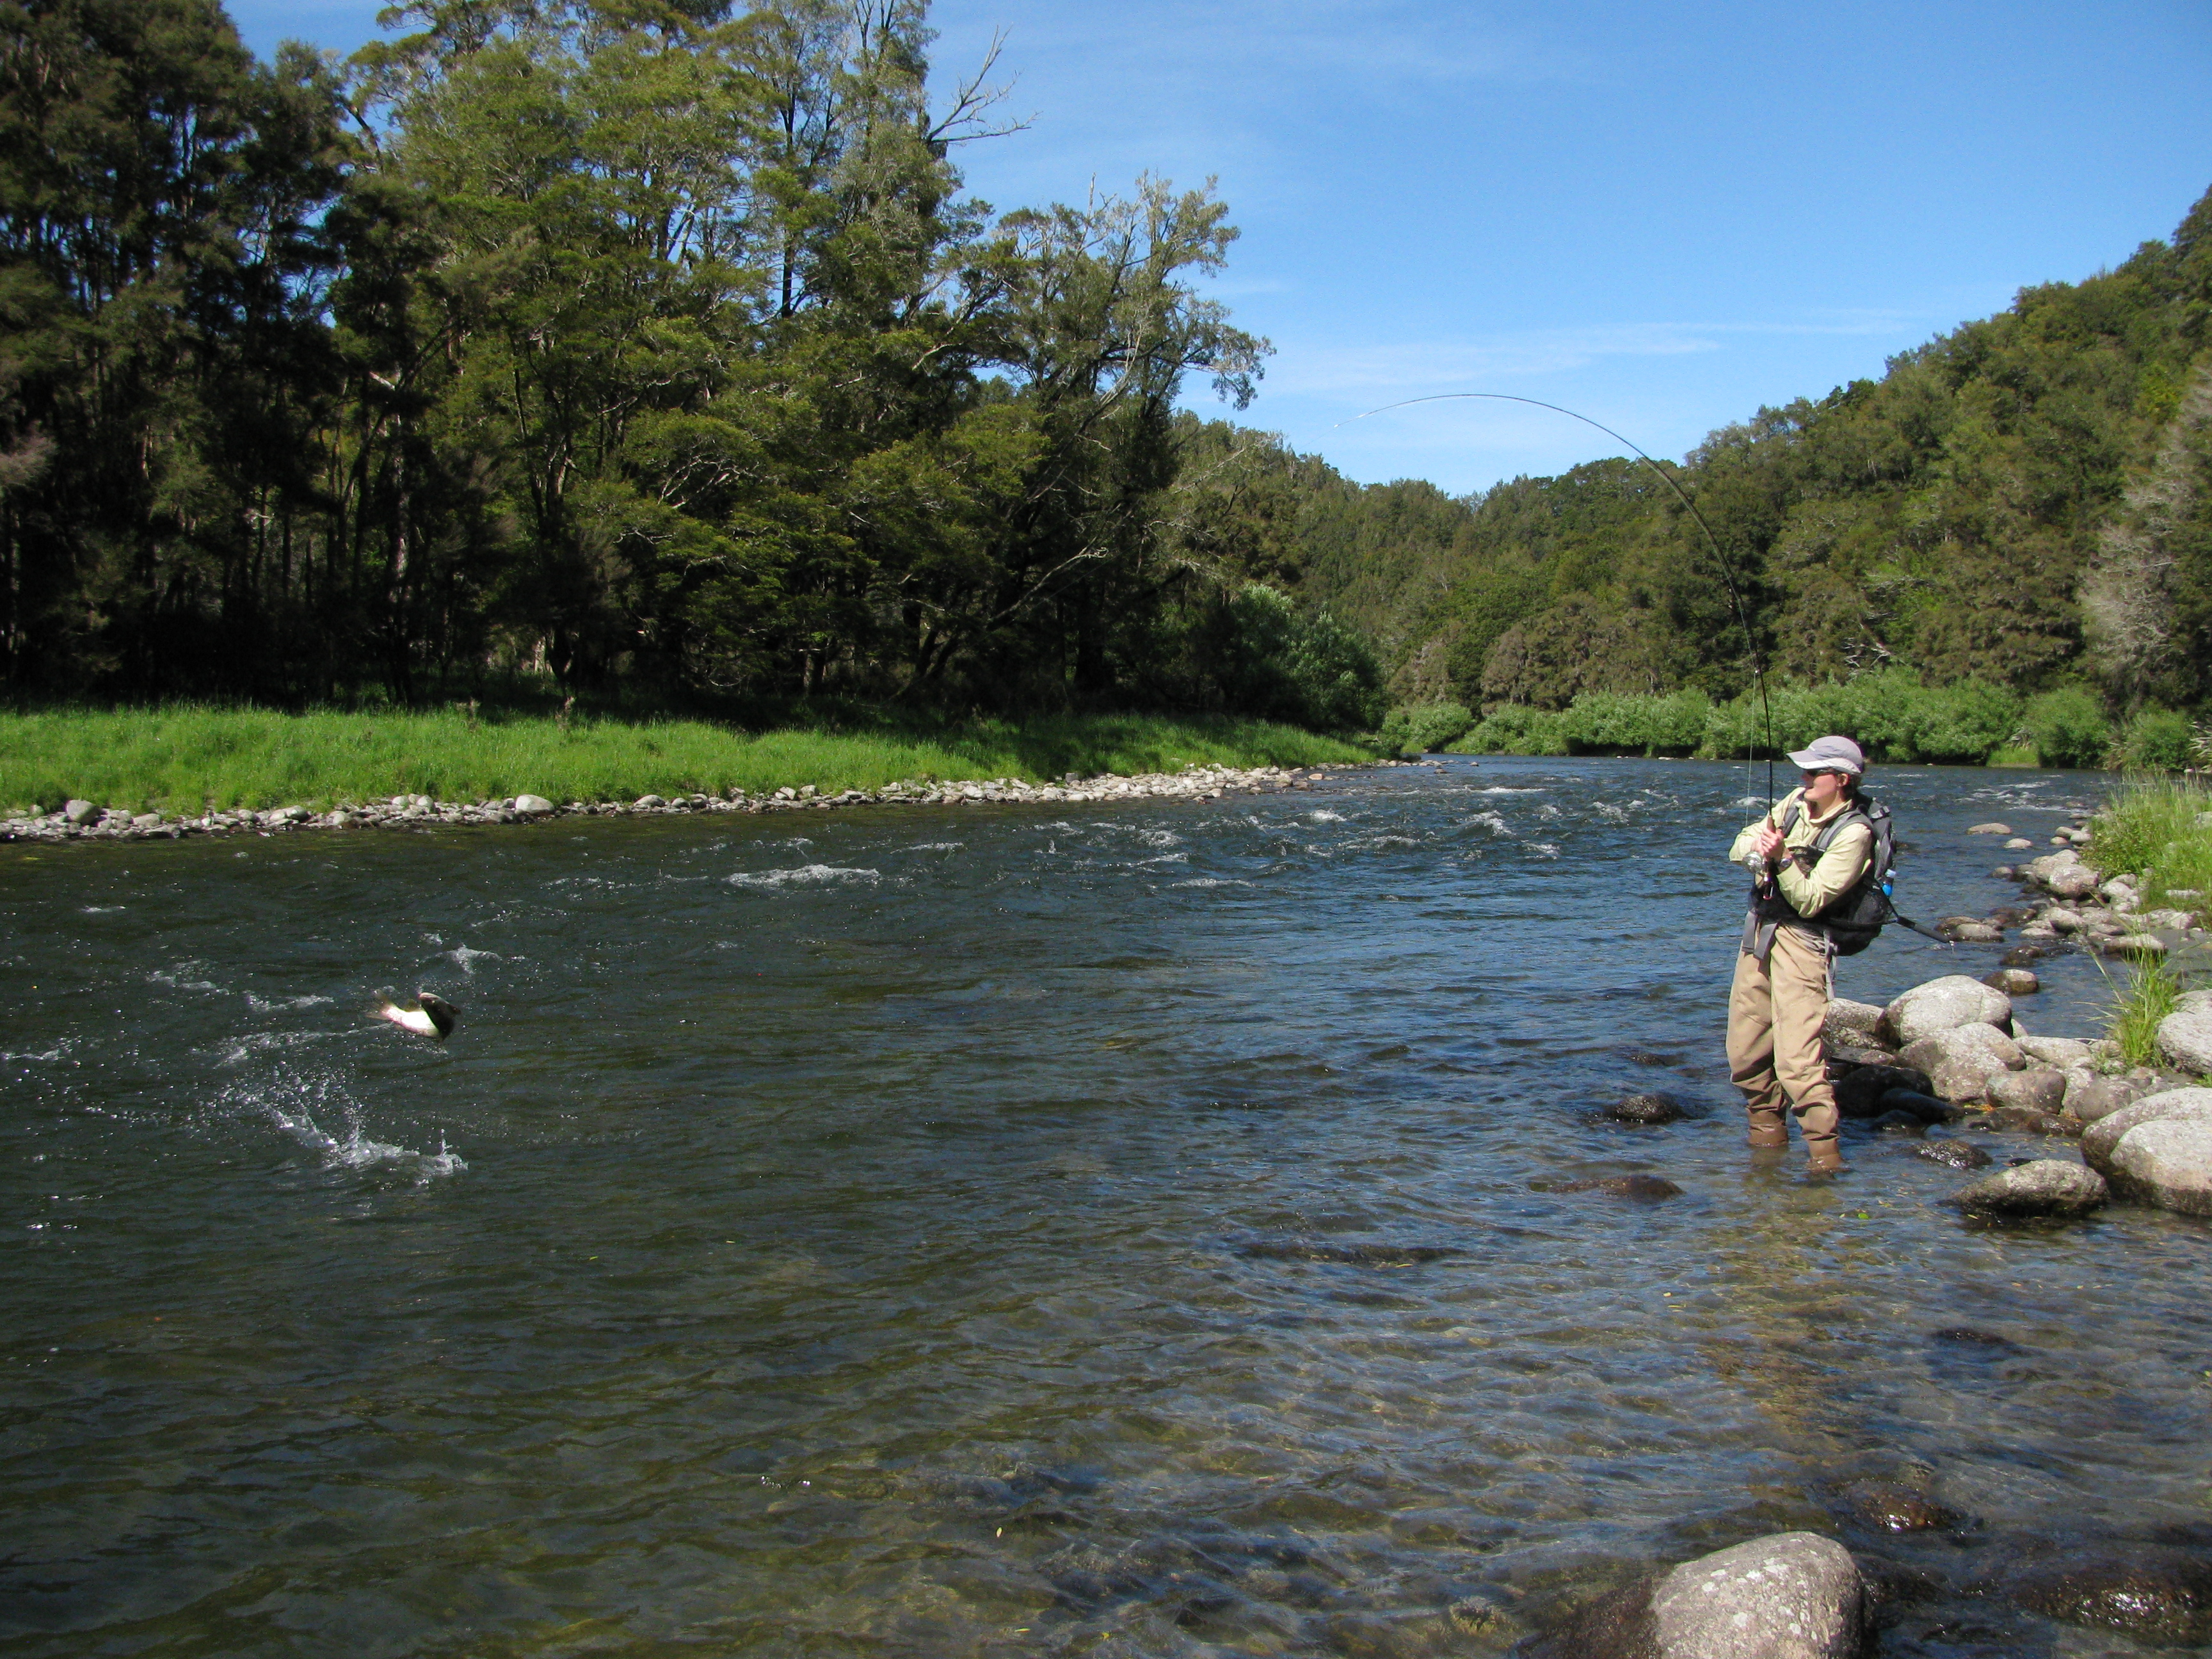 10 Things to Remember While Fishing in Variable Weather